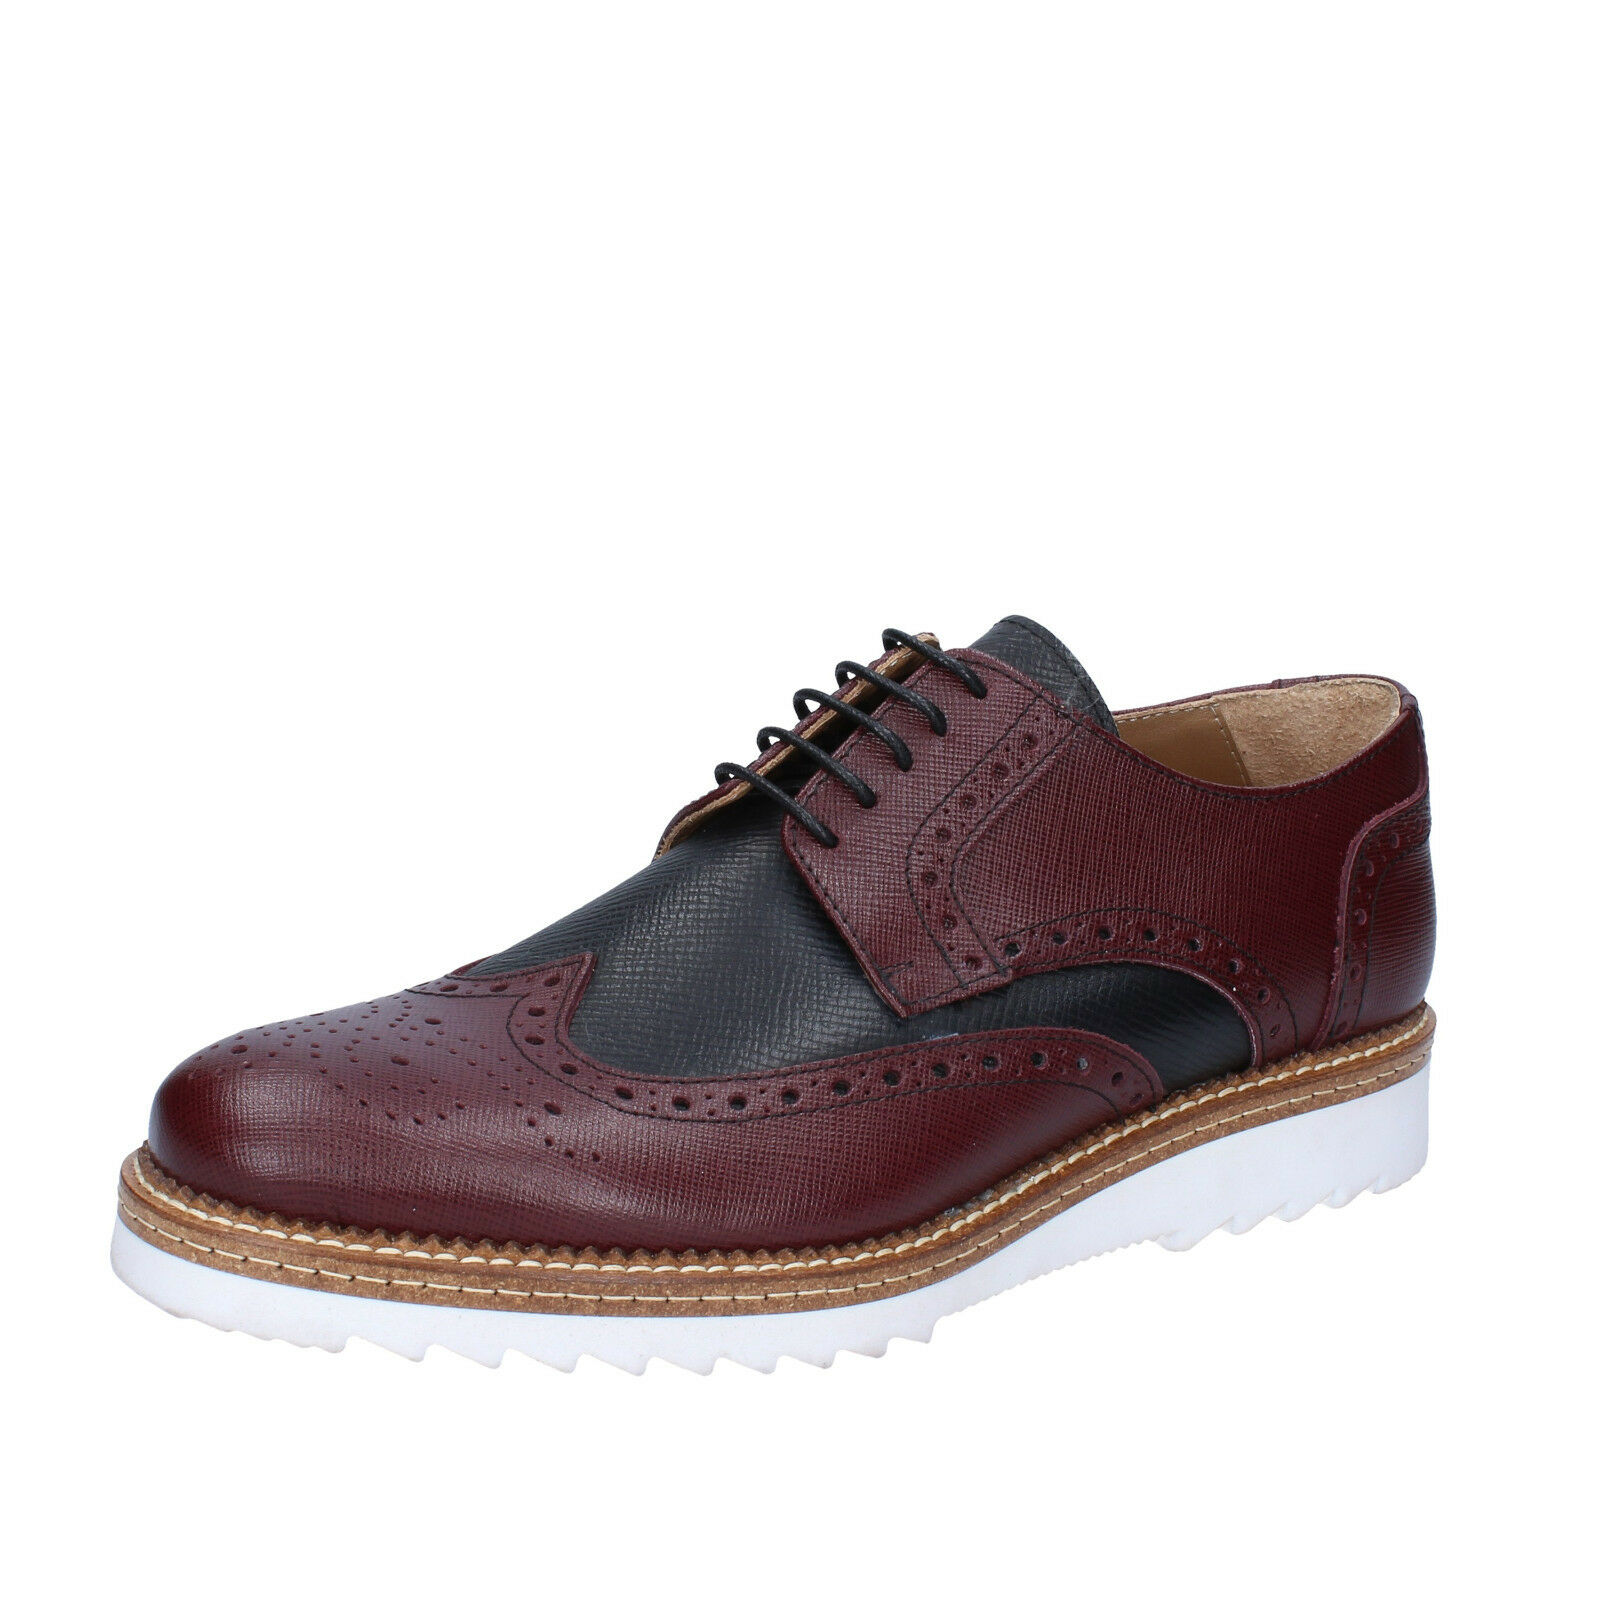 Men's shoes FDF SHOES 12 (EU 45) elegant black burgundy leather BZ370-45